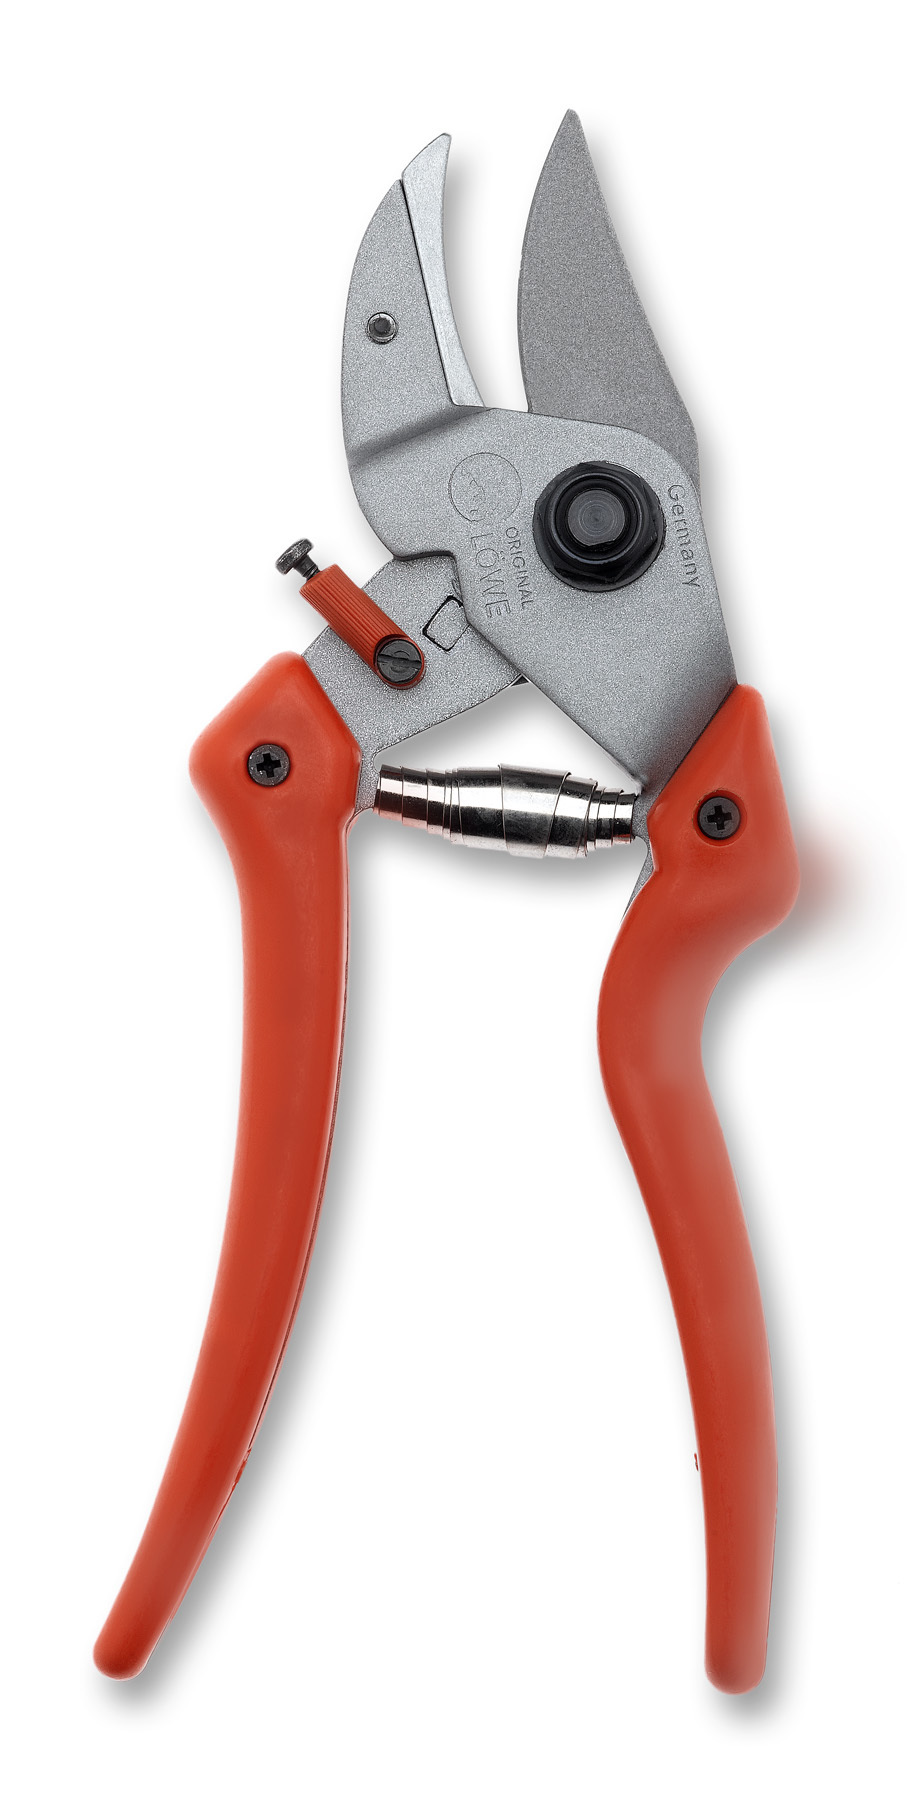 LÖWE 7.107 Anvil pruner with short cutting head and curved blade LO-7.107